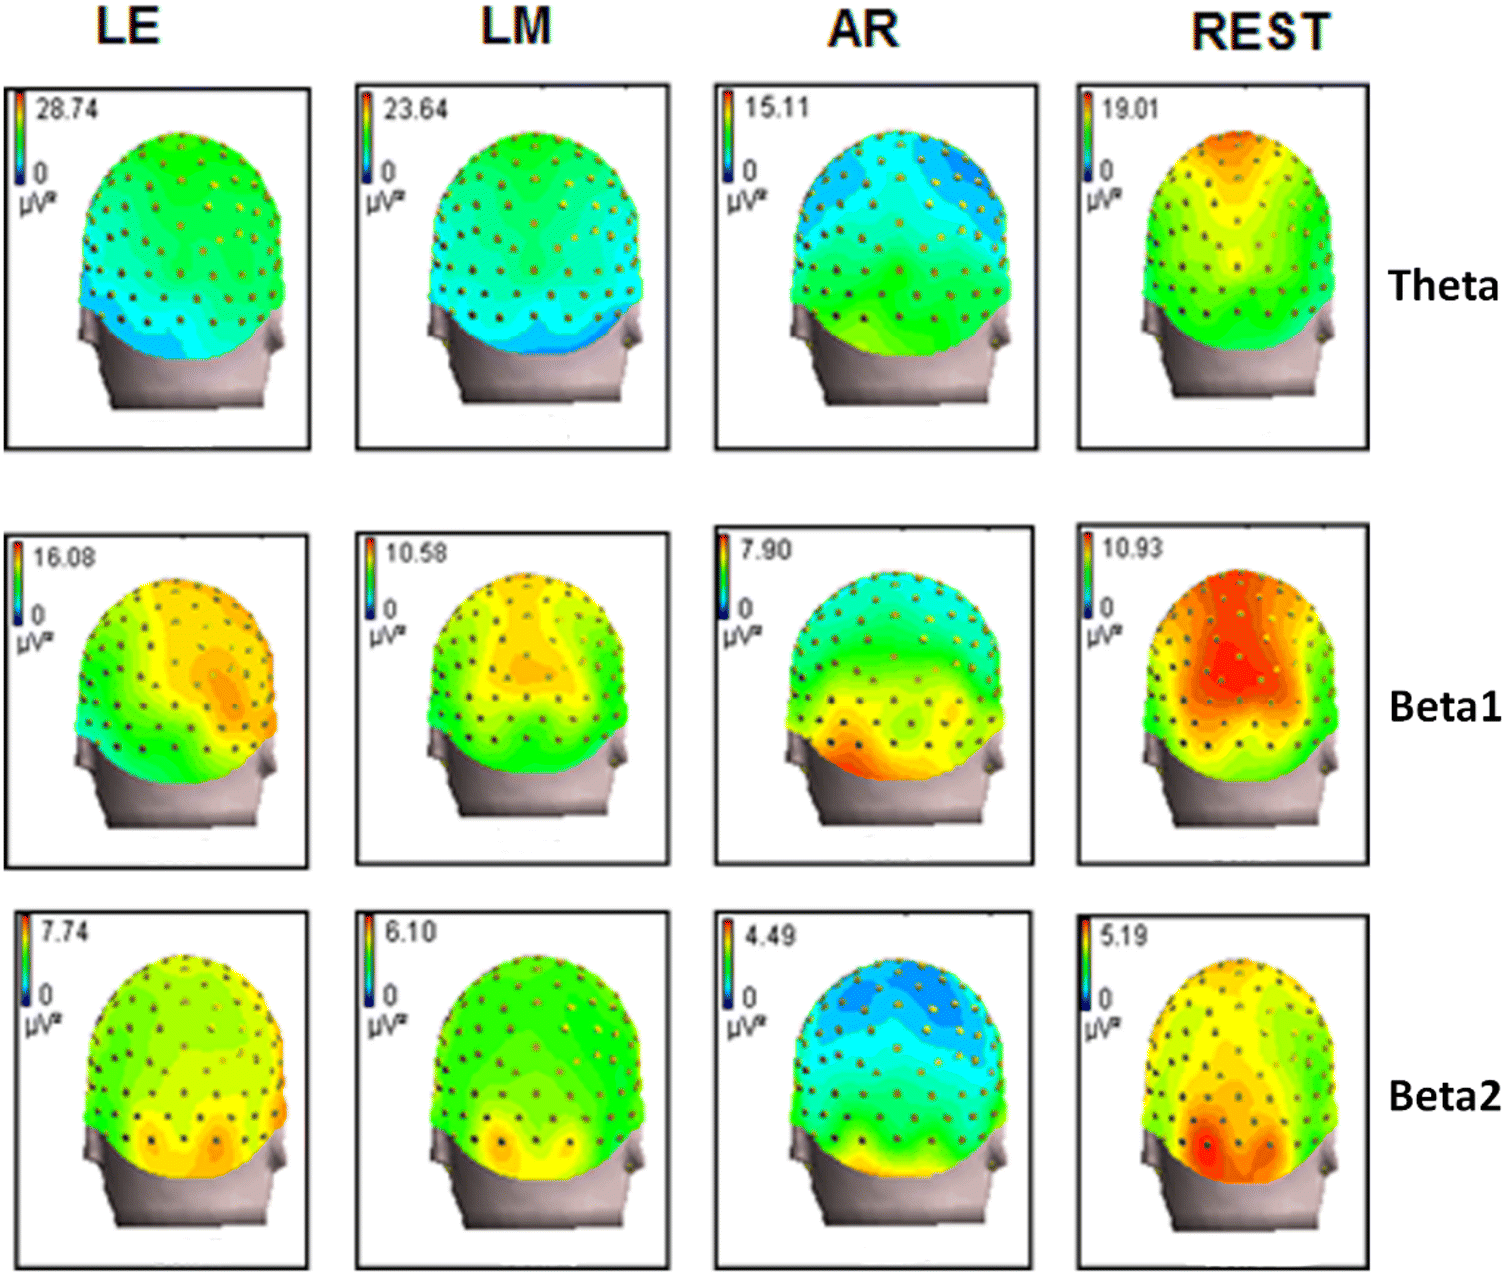 Which Reference Should We Use for EEG and ERP practice? | SpringerLink